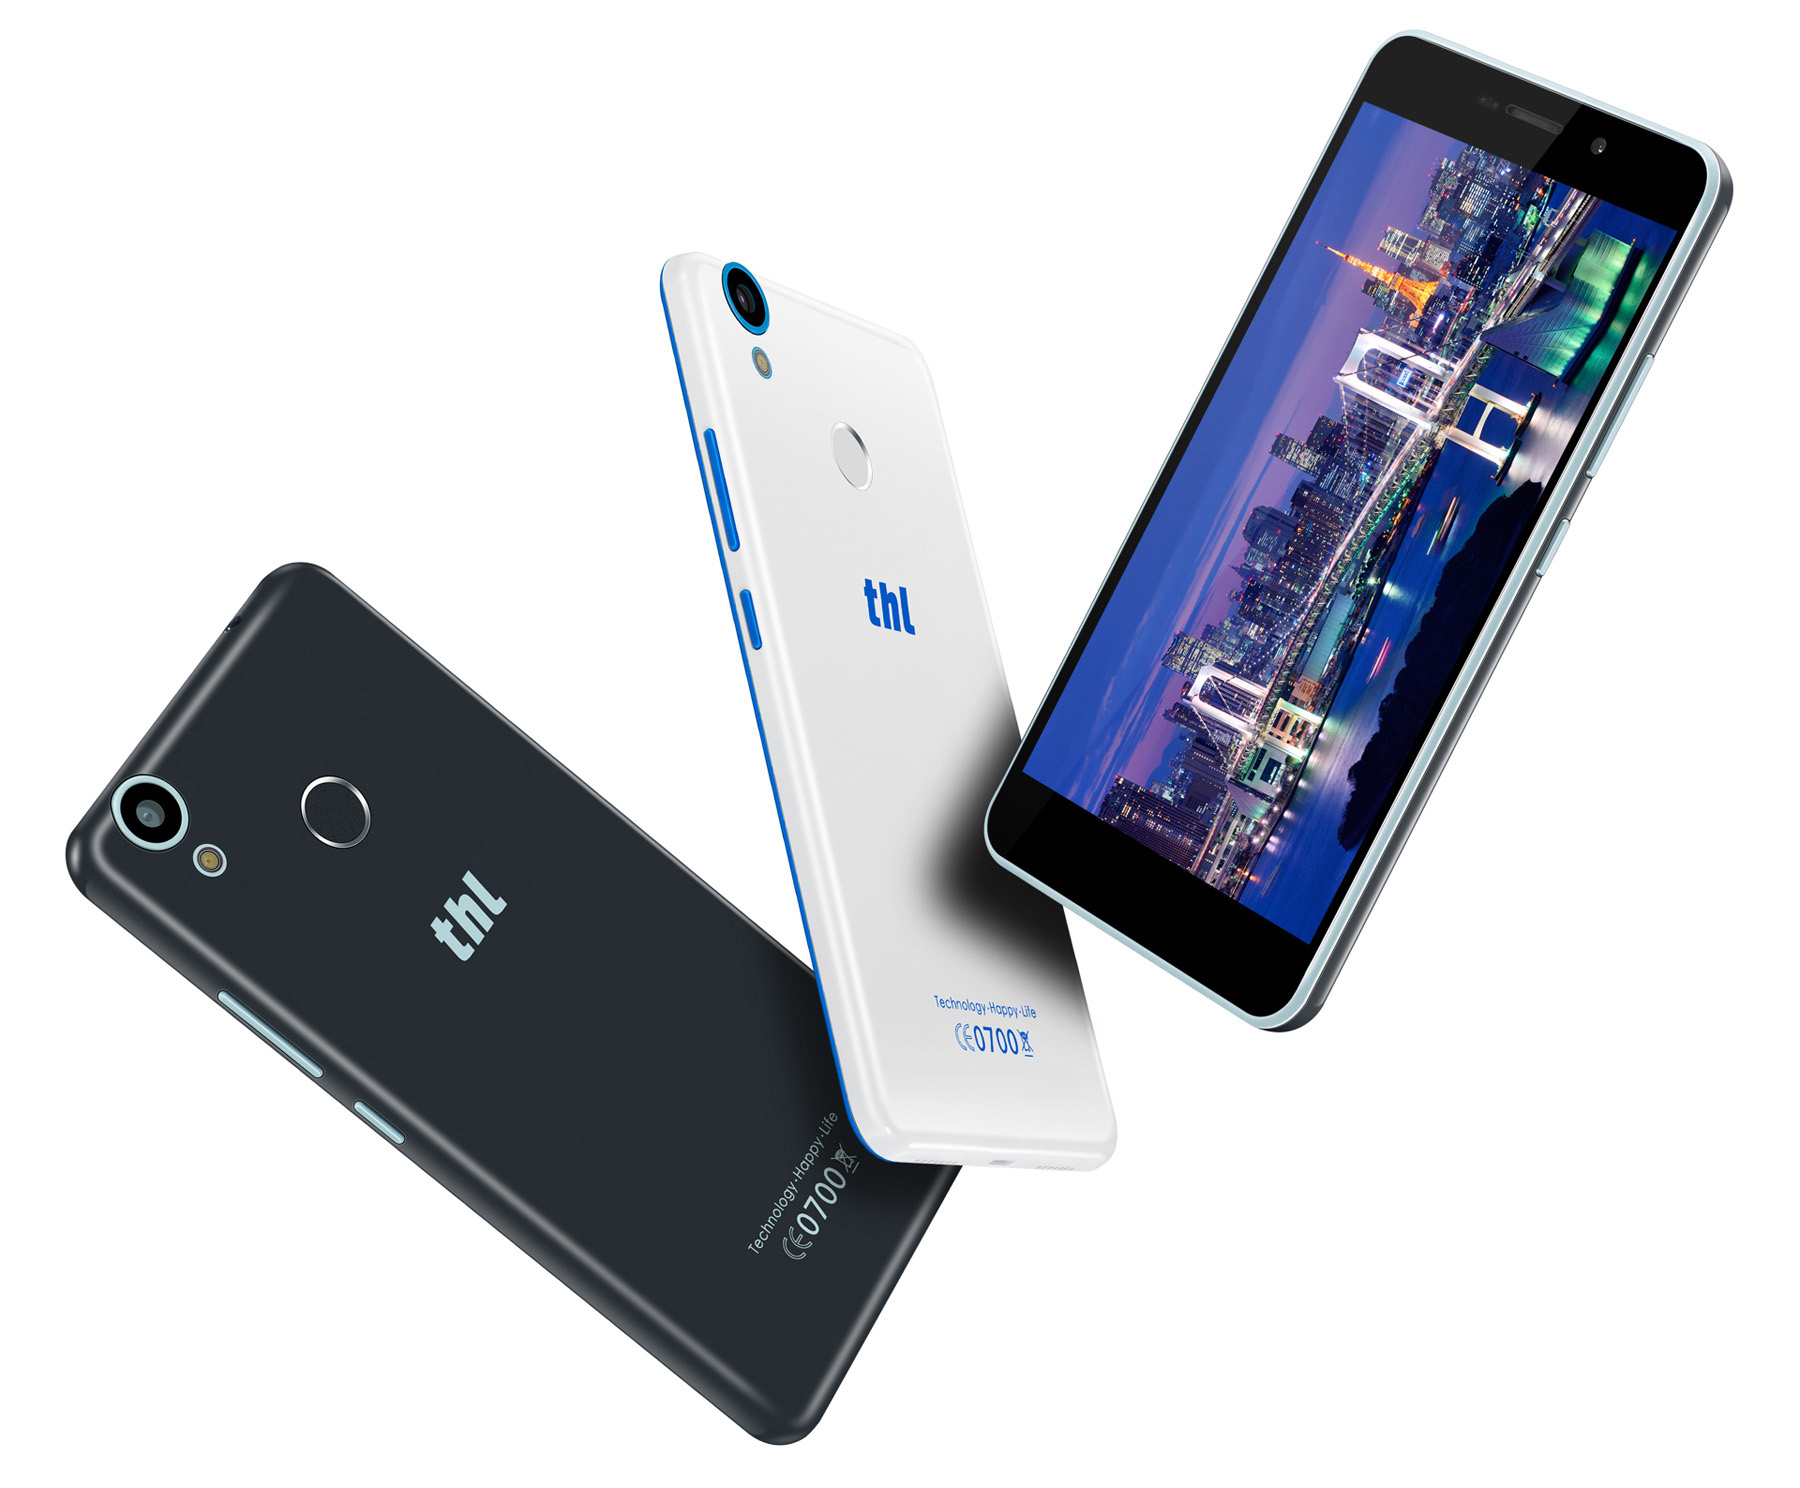 THL T9 Pro Android 6.0 5.5 inch 4G Phablet MTK6737 Quad Core 1.3GHz 2GB RAM 16GB ROM Fingerprint Scanner Bluetooth 4.0 GPS